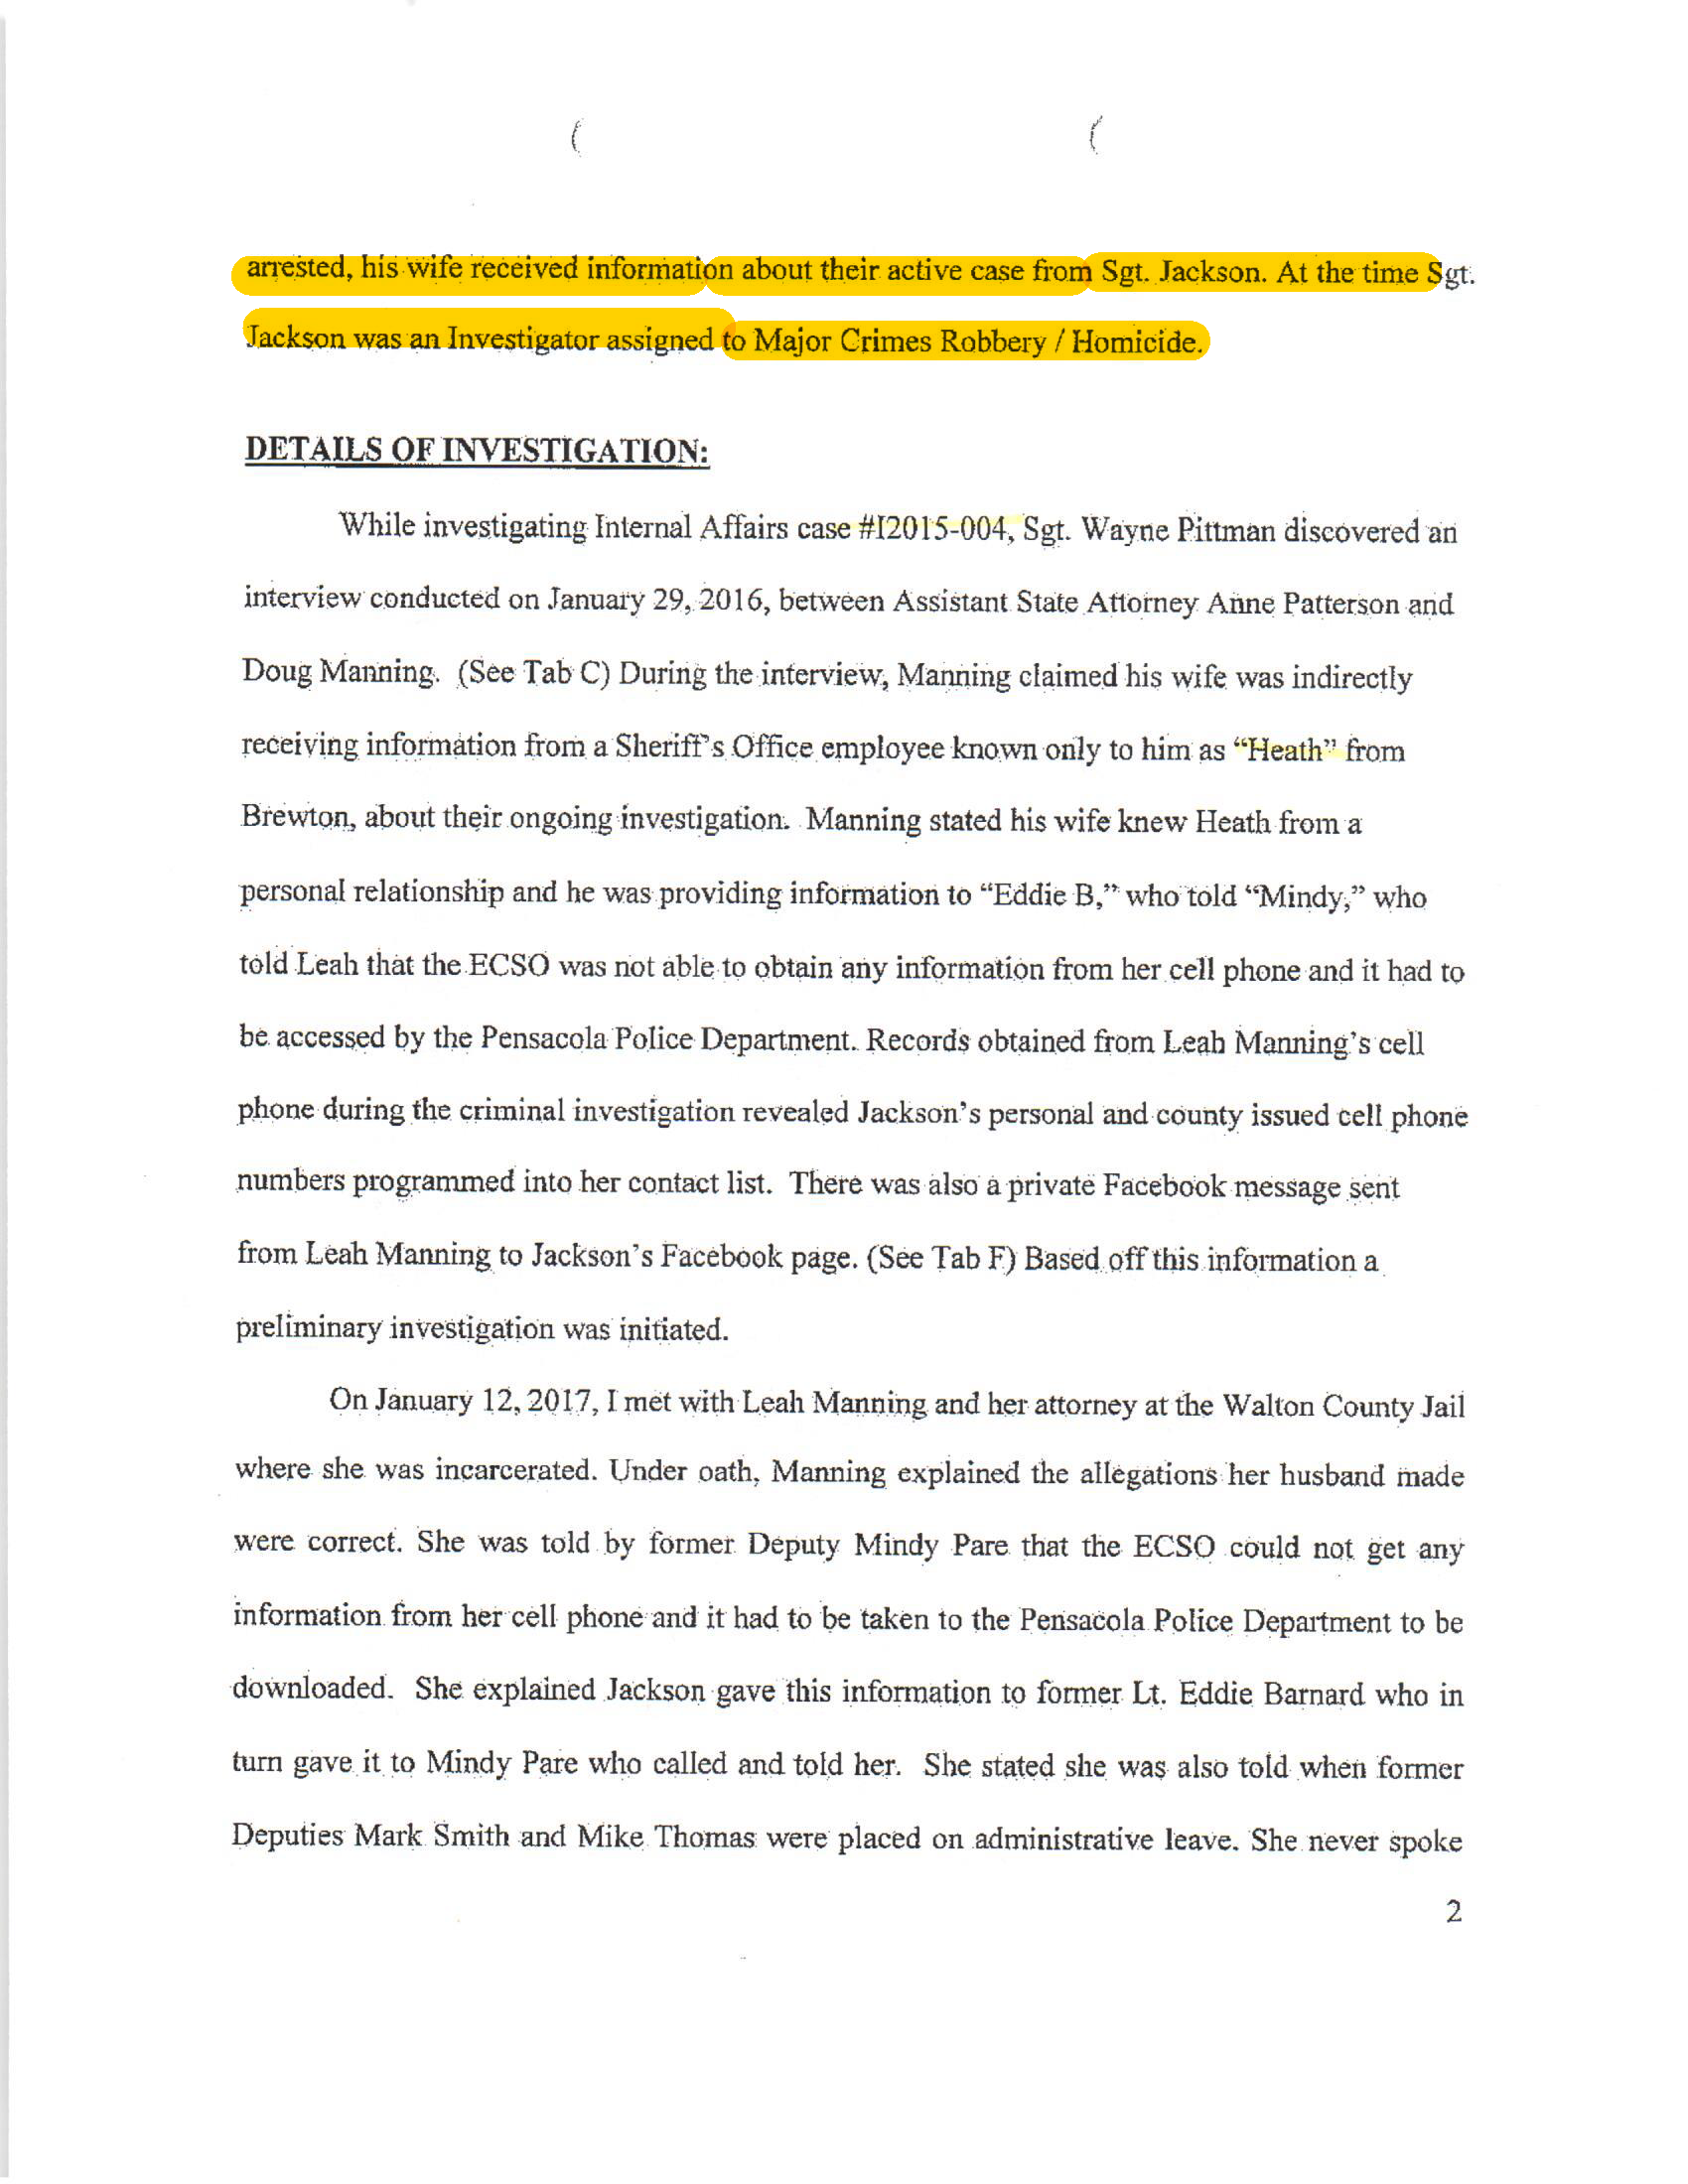 Pages from Chief Deputy Eric Haines - 30(b)(6) Deposition Exhibit Number 8 (1)_Page_5